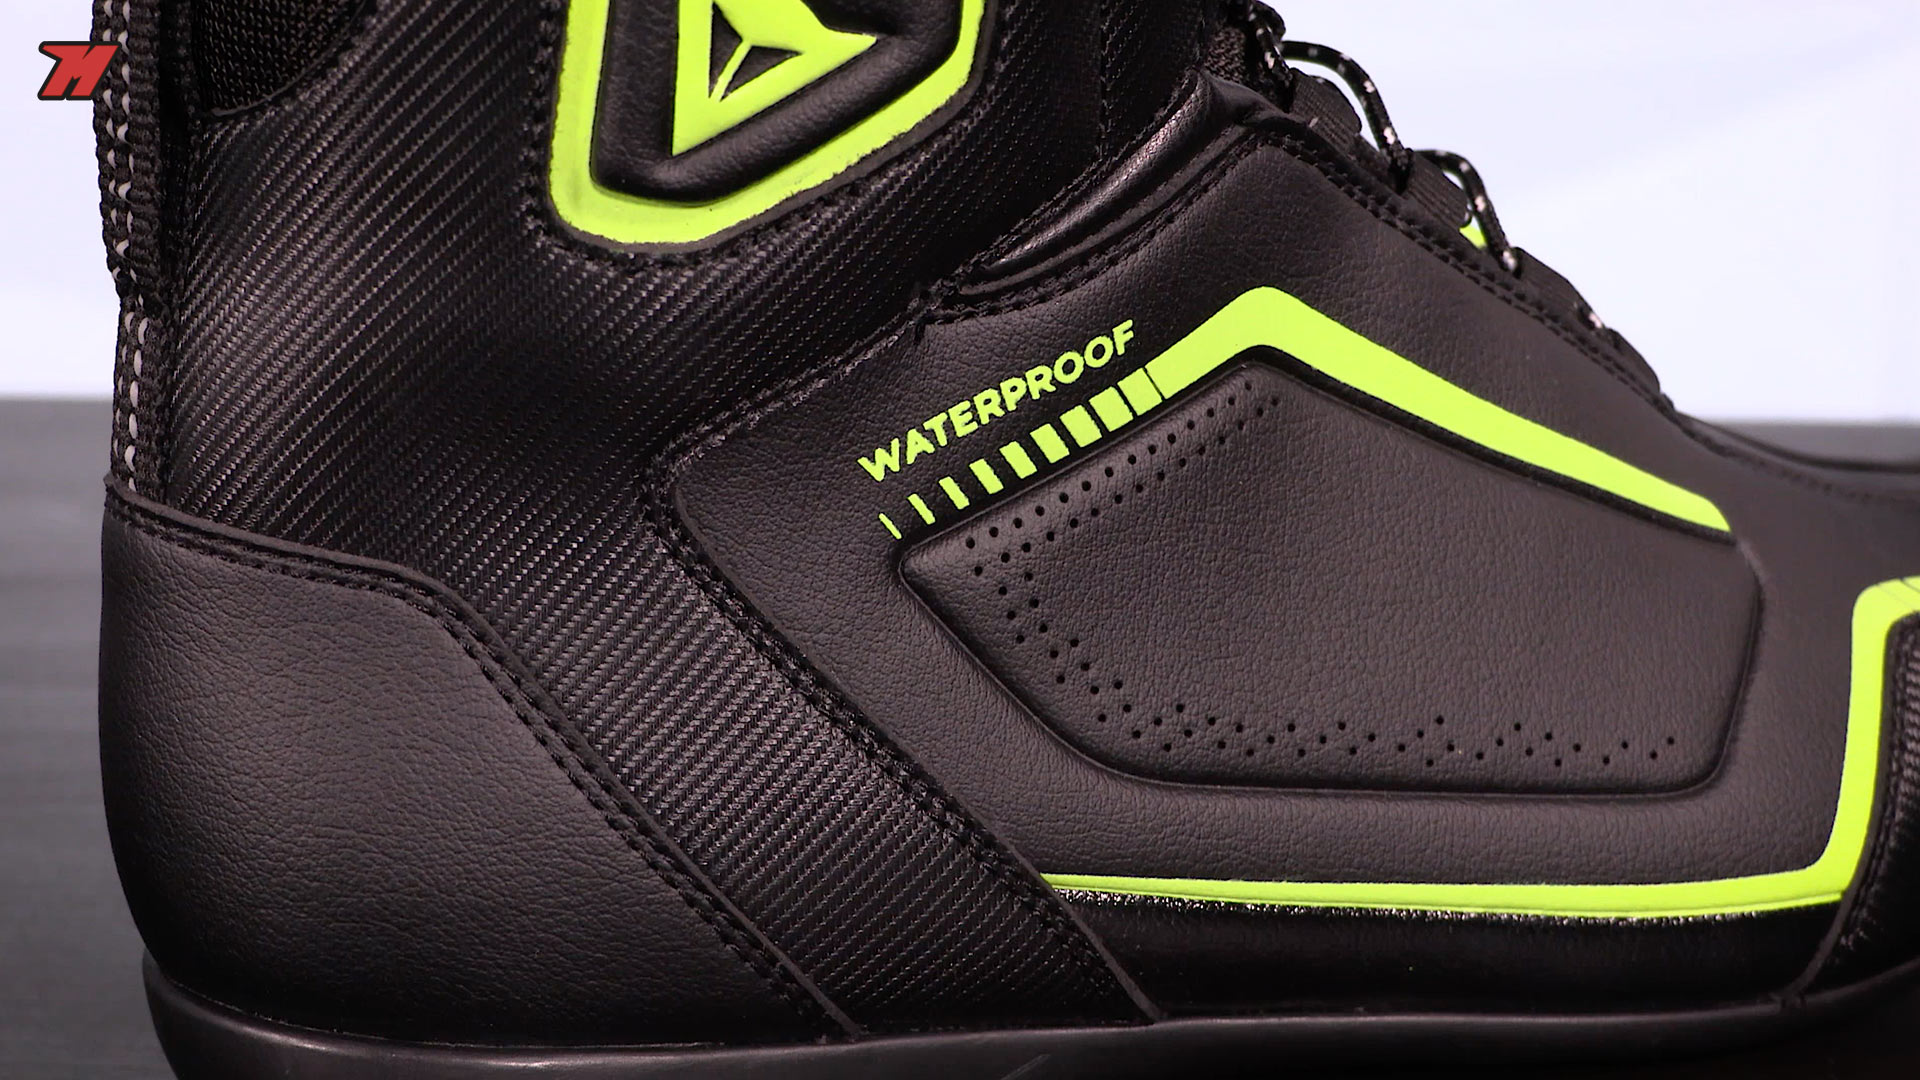 83eed76321f Review  Dainese Raptors